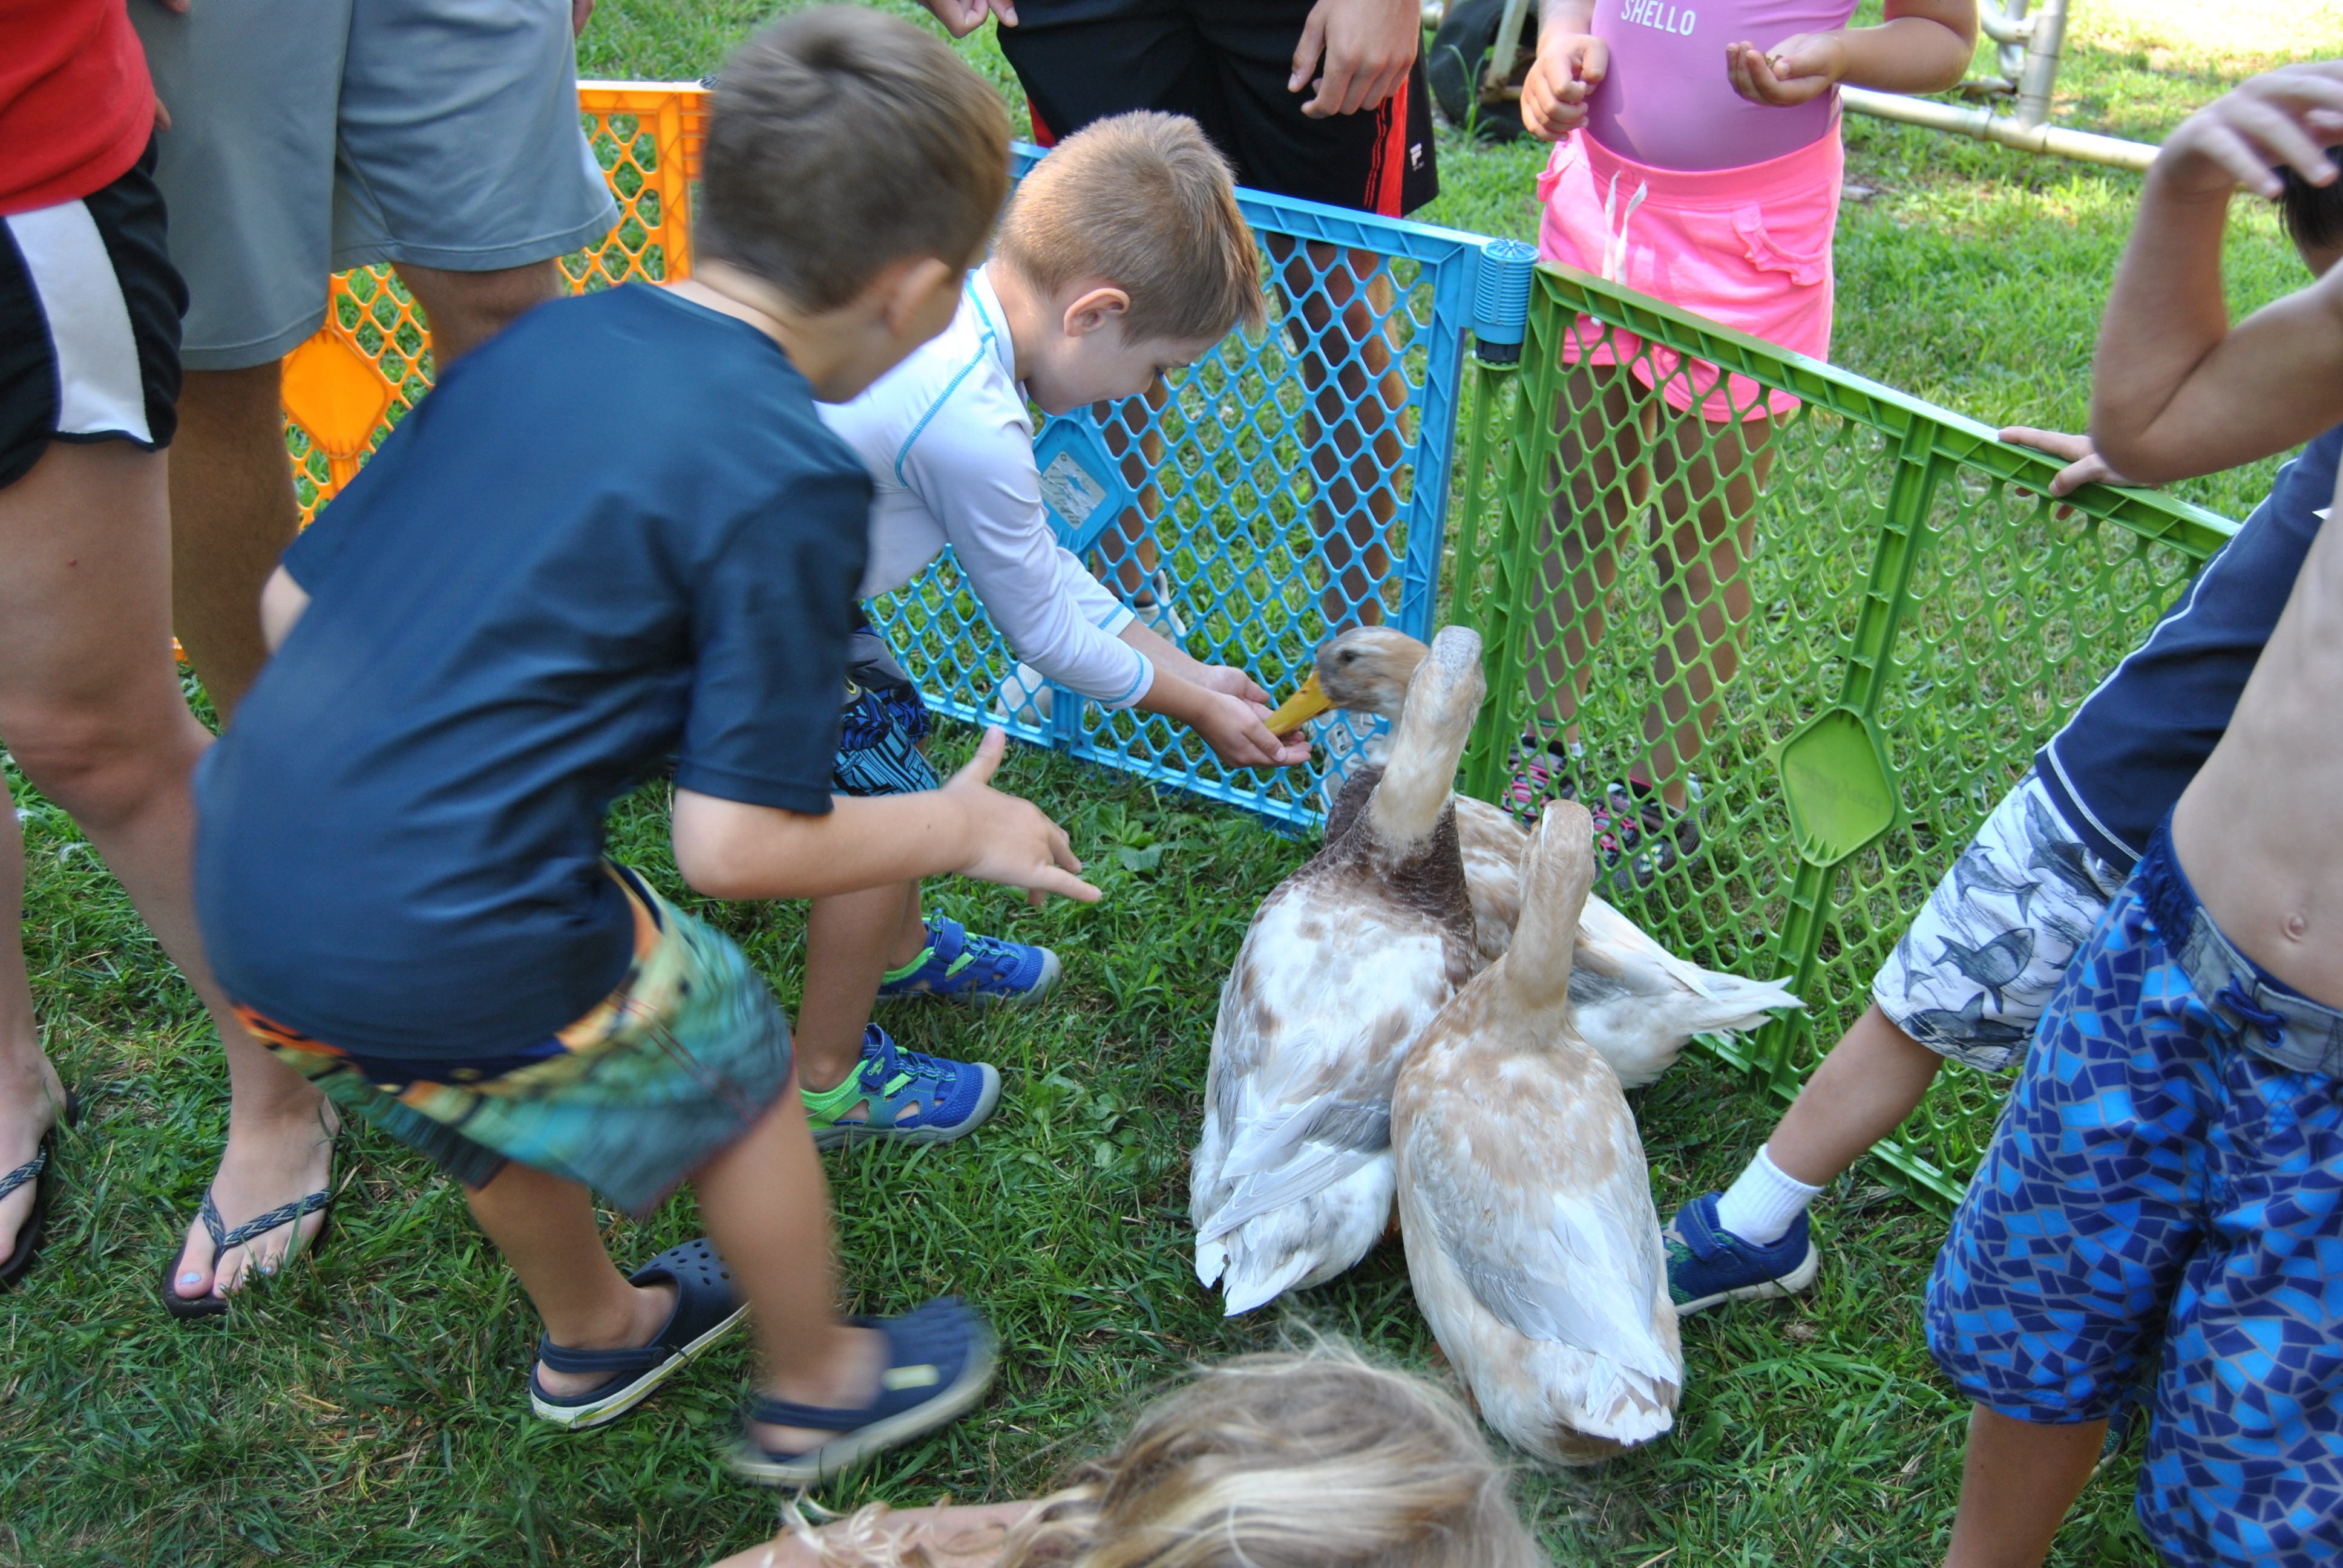 Chartwell's Happy Day Camp Marlton image 52